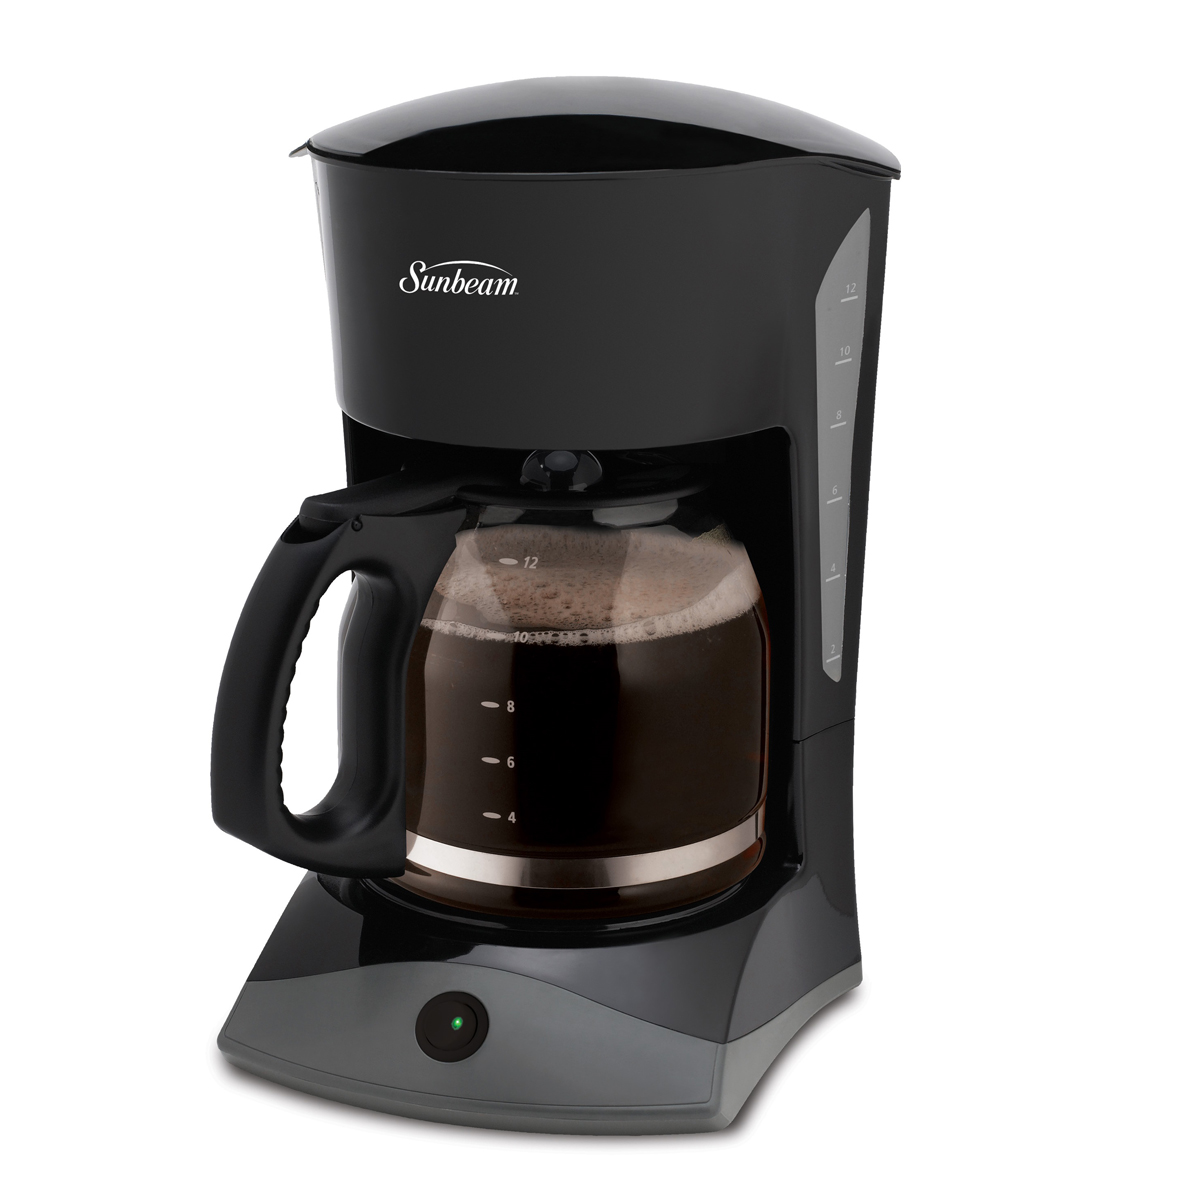 Sunbeam 12-Cup Switch Coffeemaker, Black 6972-033 Sunbeam Canada